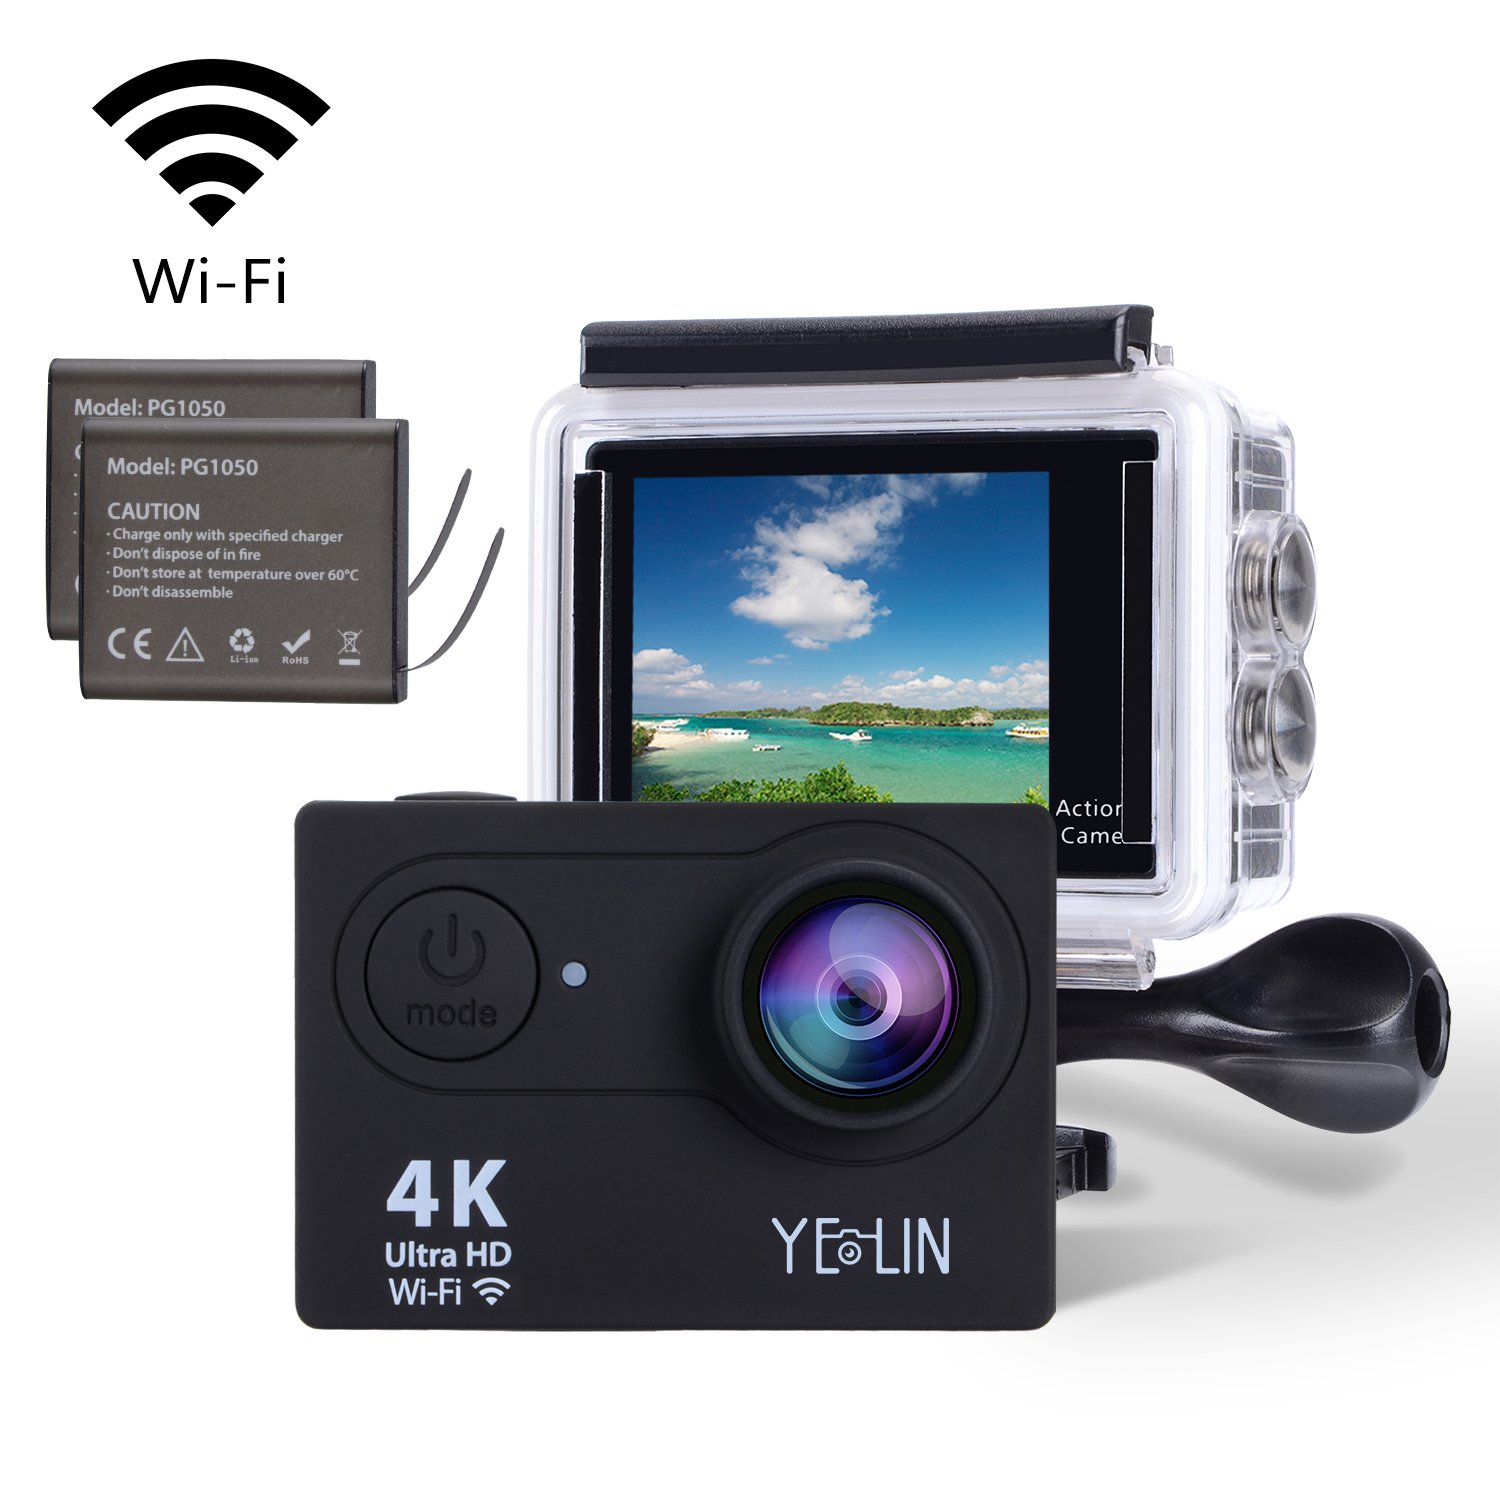 YELIN Action Camera 4K WiFi Waterproof Sport Camera HD 12MP Camcorder 170 Degree Lens with 2-inch LCD Screen 2 Rechargeable Li-ion Batteries 19pcs Accessories (Black) by YELIN